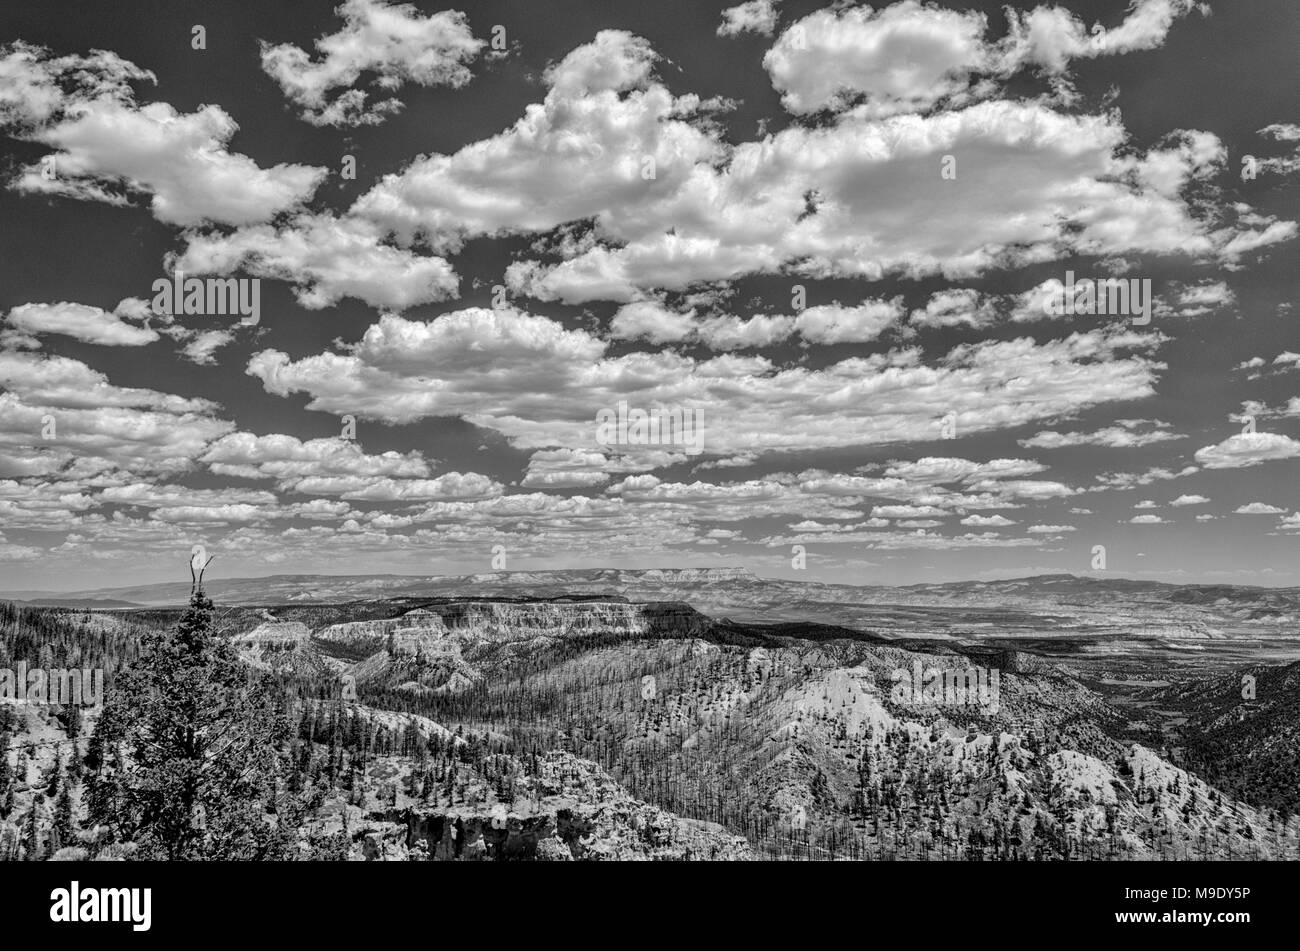 Black and white scenic over look if cliffs and valley under sky with clouds. Stock Photo